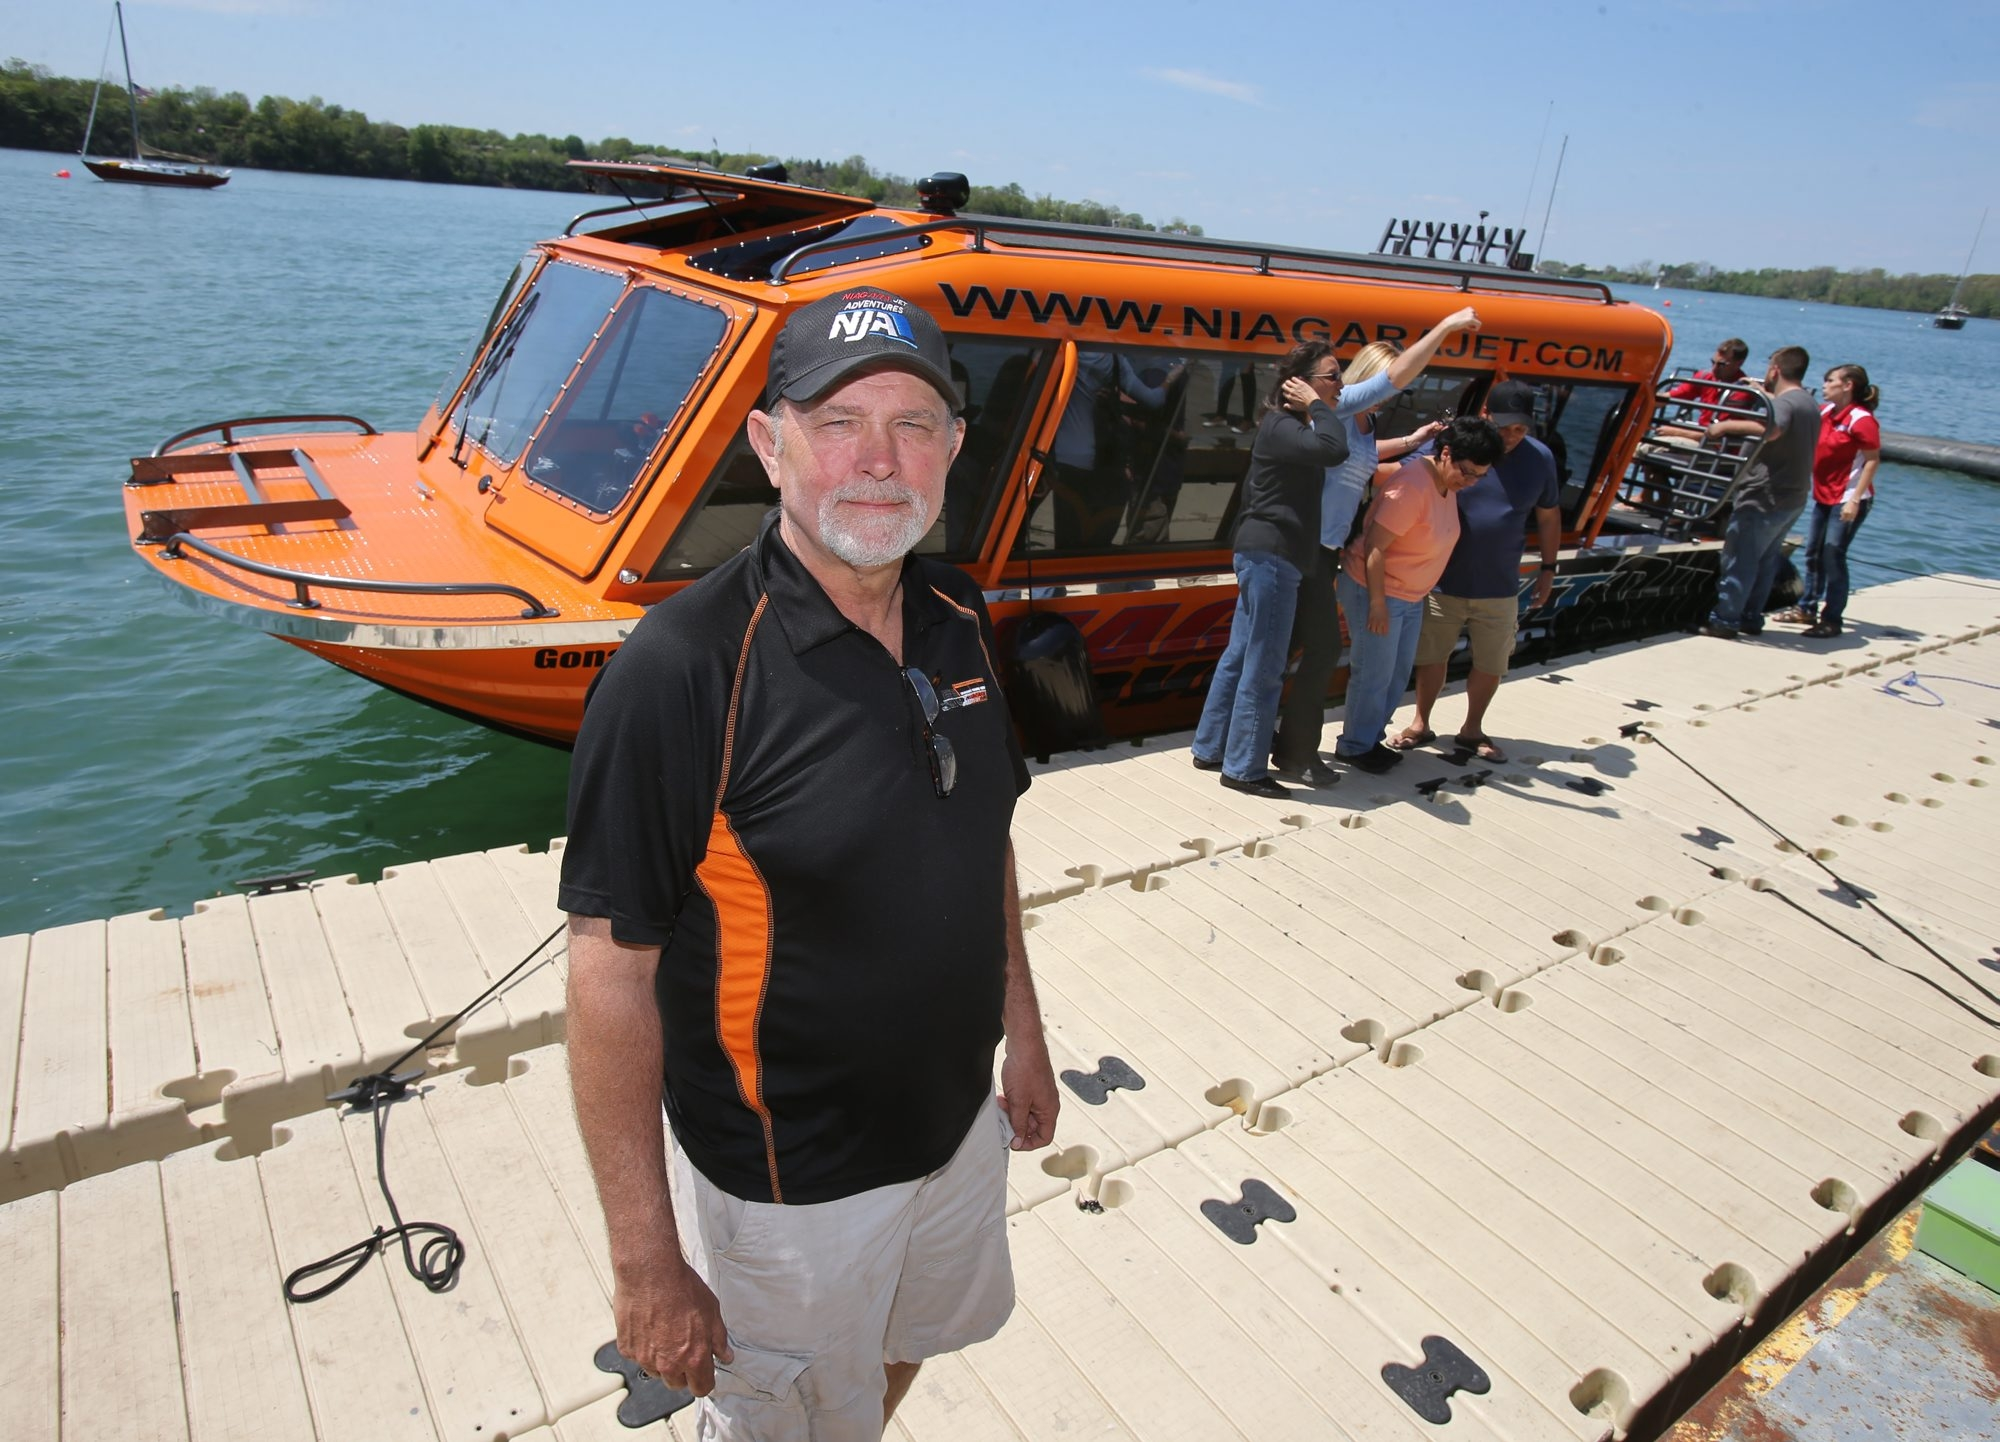 Mike Fox, owner of Niagara Jet Adventures, stands near a jet boat at Fox Boyz Marina in Youngstown recently.